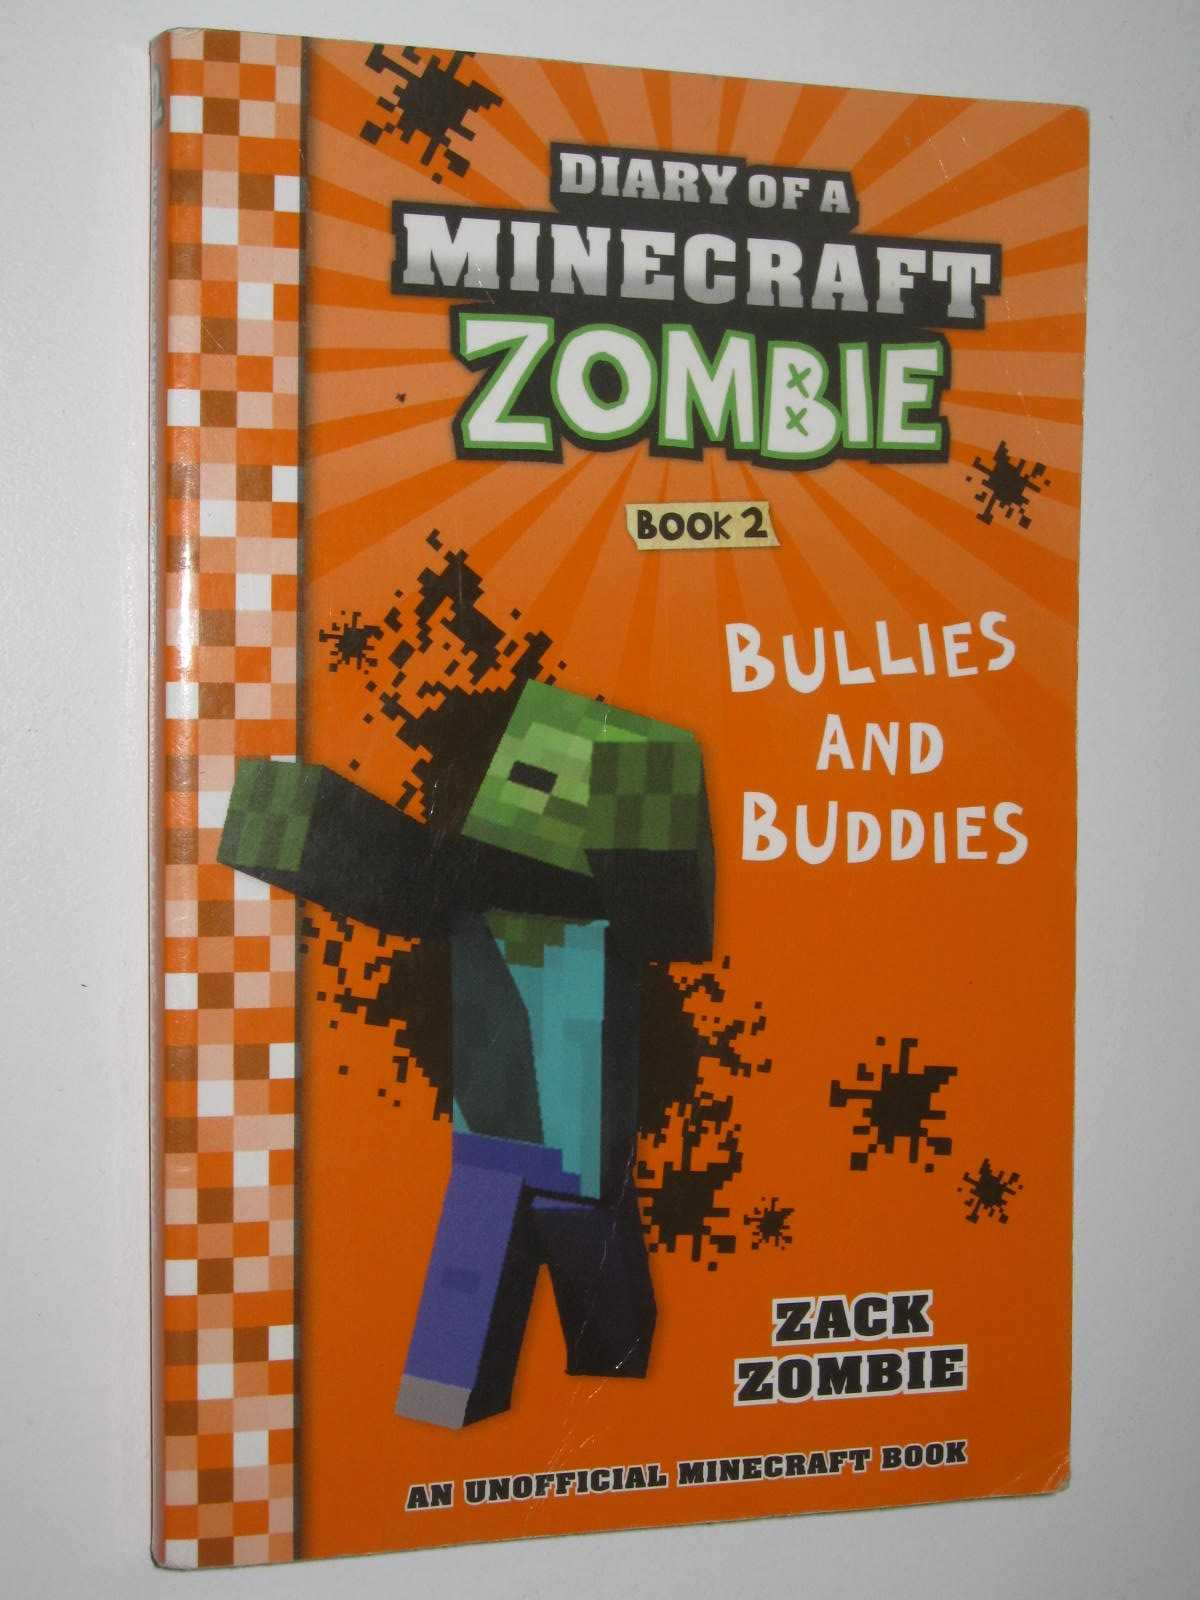 Image for Bullies and Buddies - Diary of a Minecraft Zombie Series #2